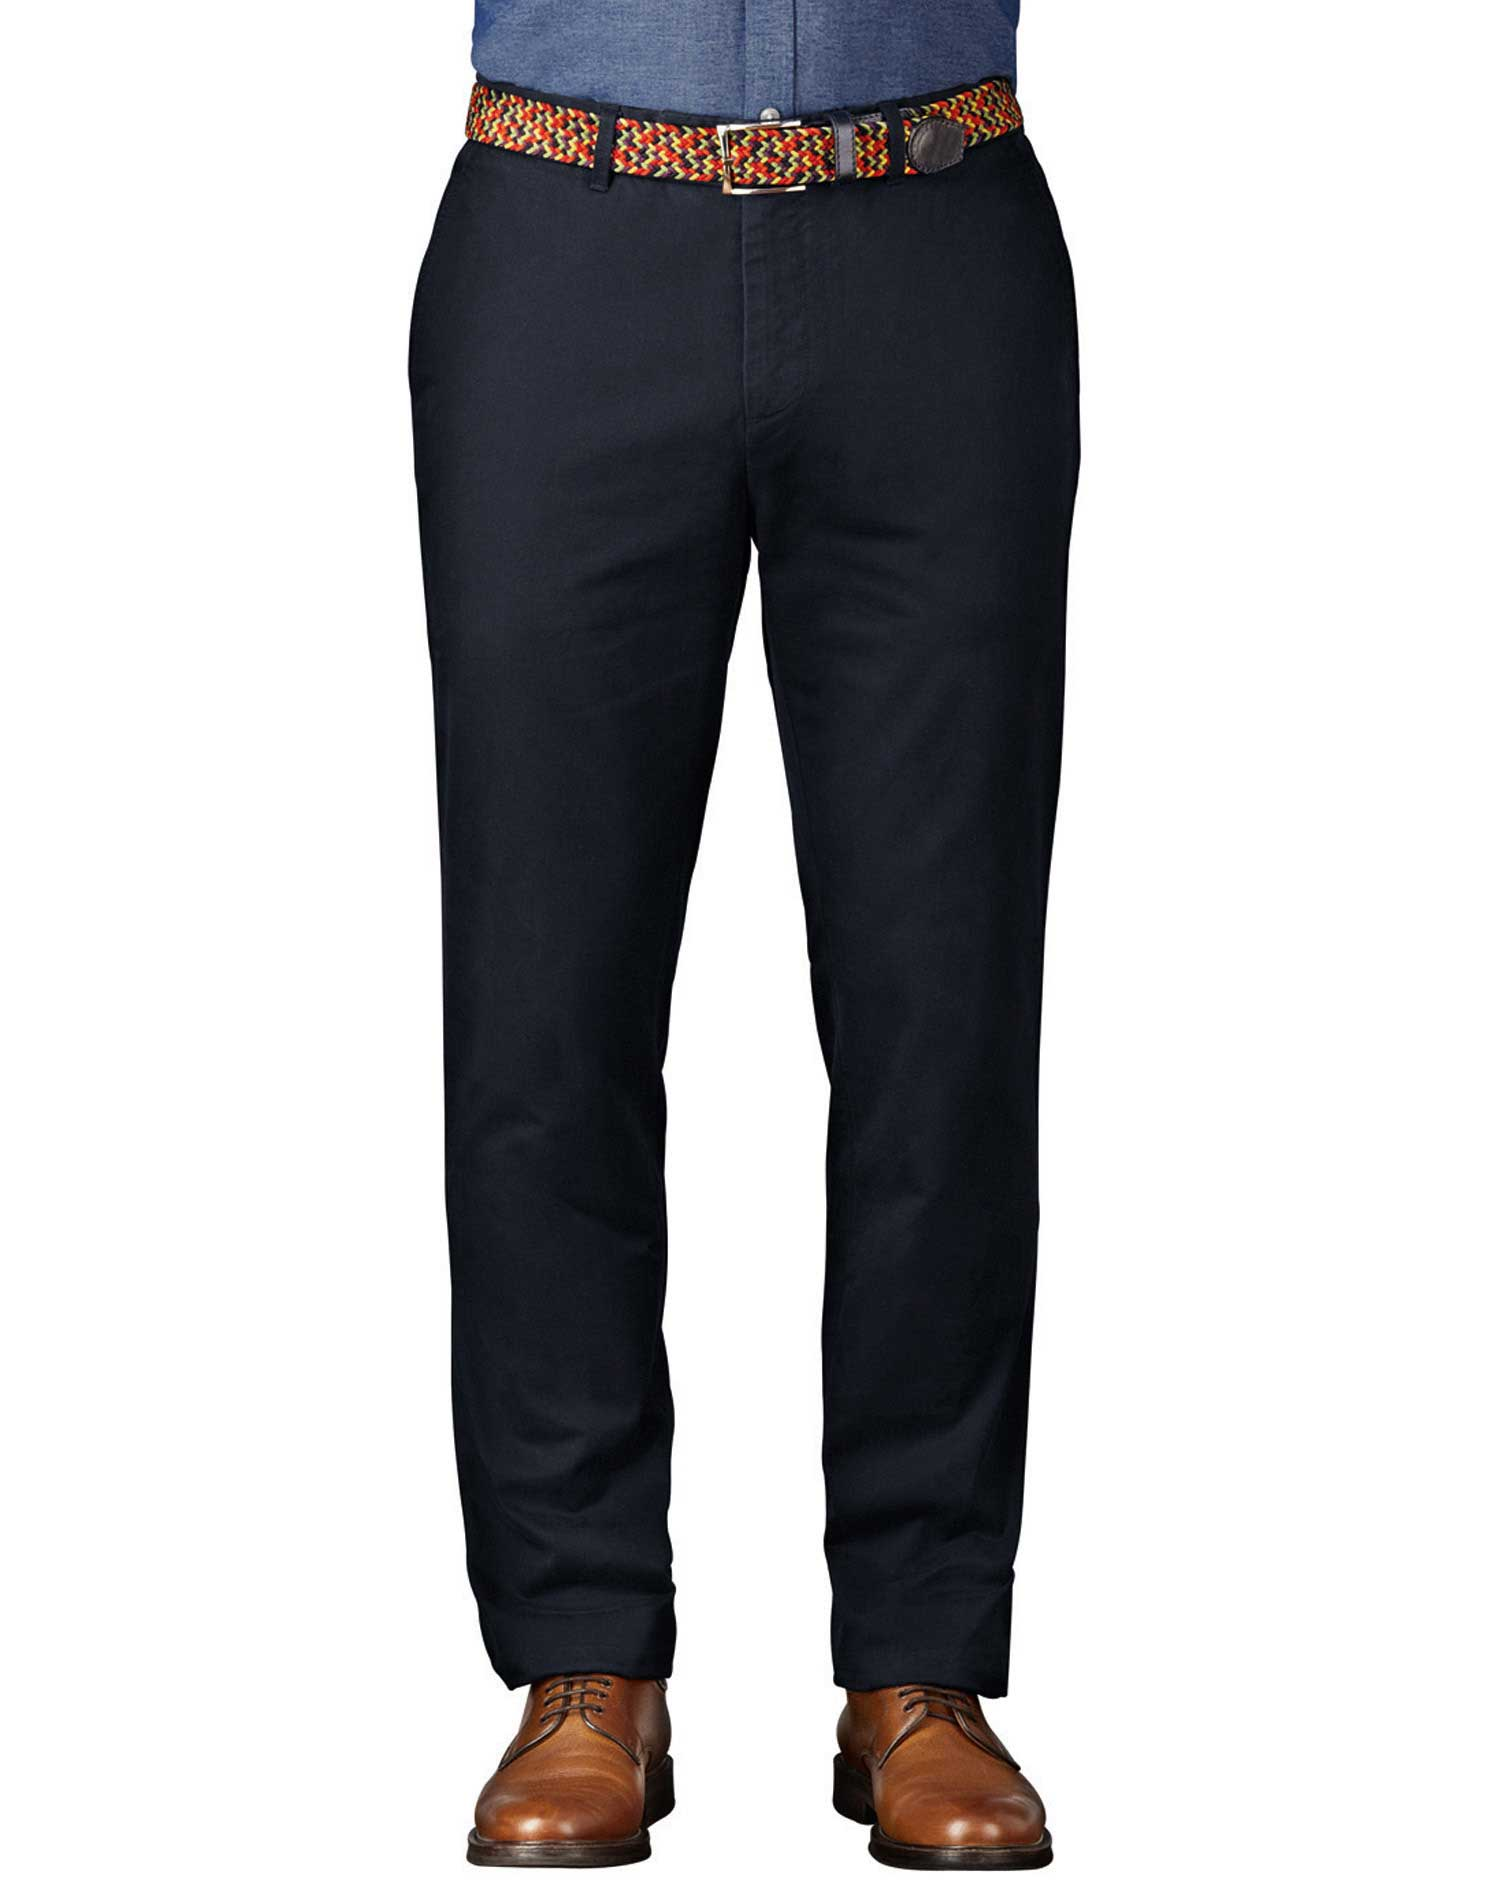 Navy Extra Slim Fit Flat Front Cotton Chino Trousers Size W30 L32 by Charles Tyrwhitt